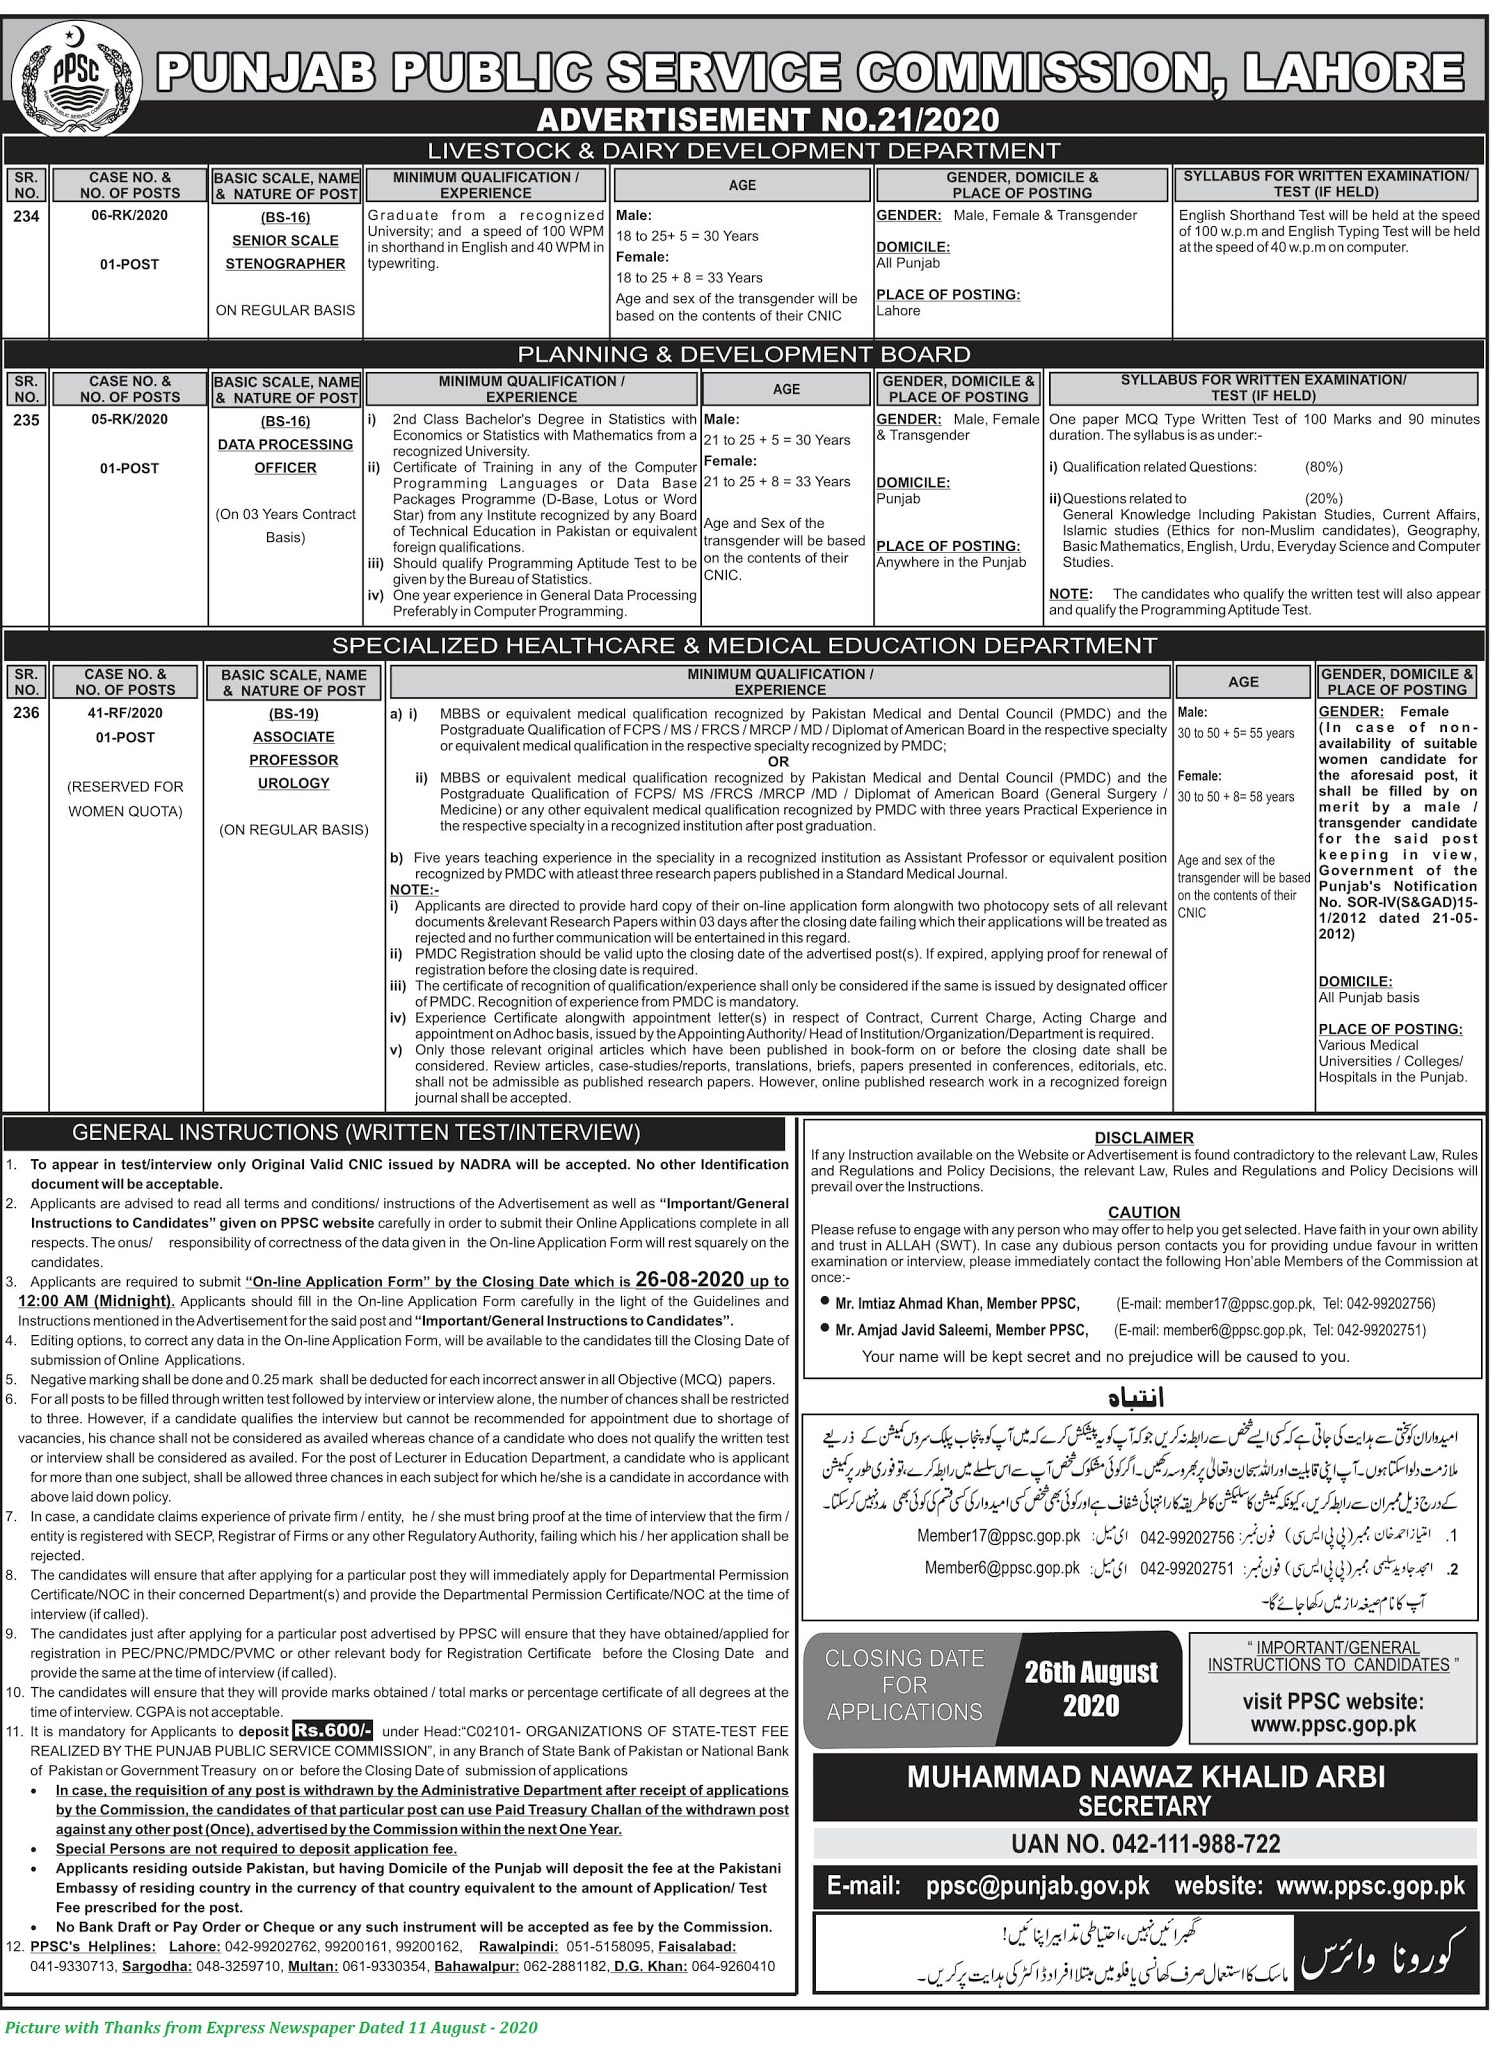 PPSC Jobs 2020 - Latest PPSC Jobs Advertisment No. 21/2020 Latest PPSC Jobs Advertisment August 2020 Apply Online